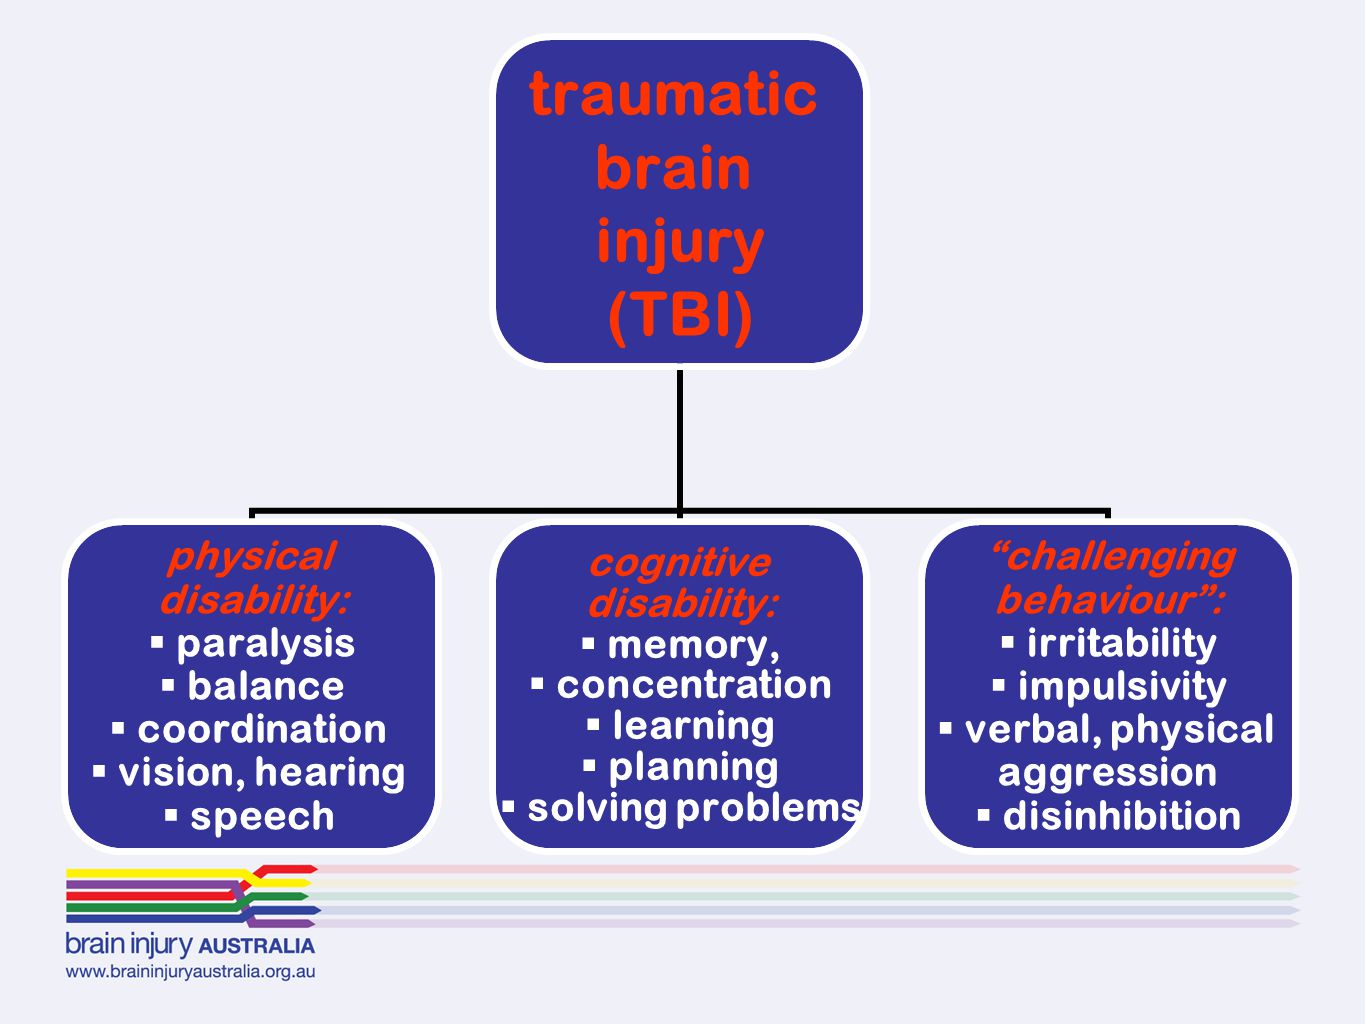 traumatic brain injury (TBI) physical disability: paralysis balance coordination vision, hearing speech cognitive disability: memory, concentration learning planning solving problems challenging behaviour : irritability impulsivity verbal, physical aggression disinhibition